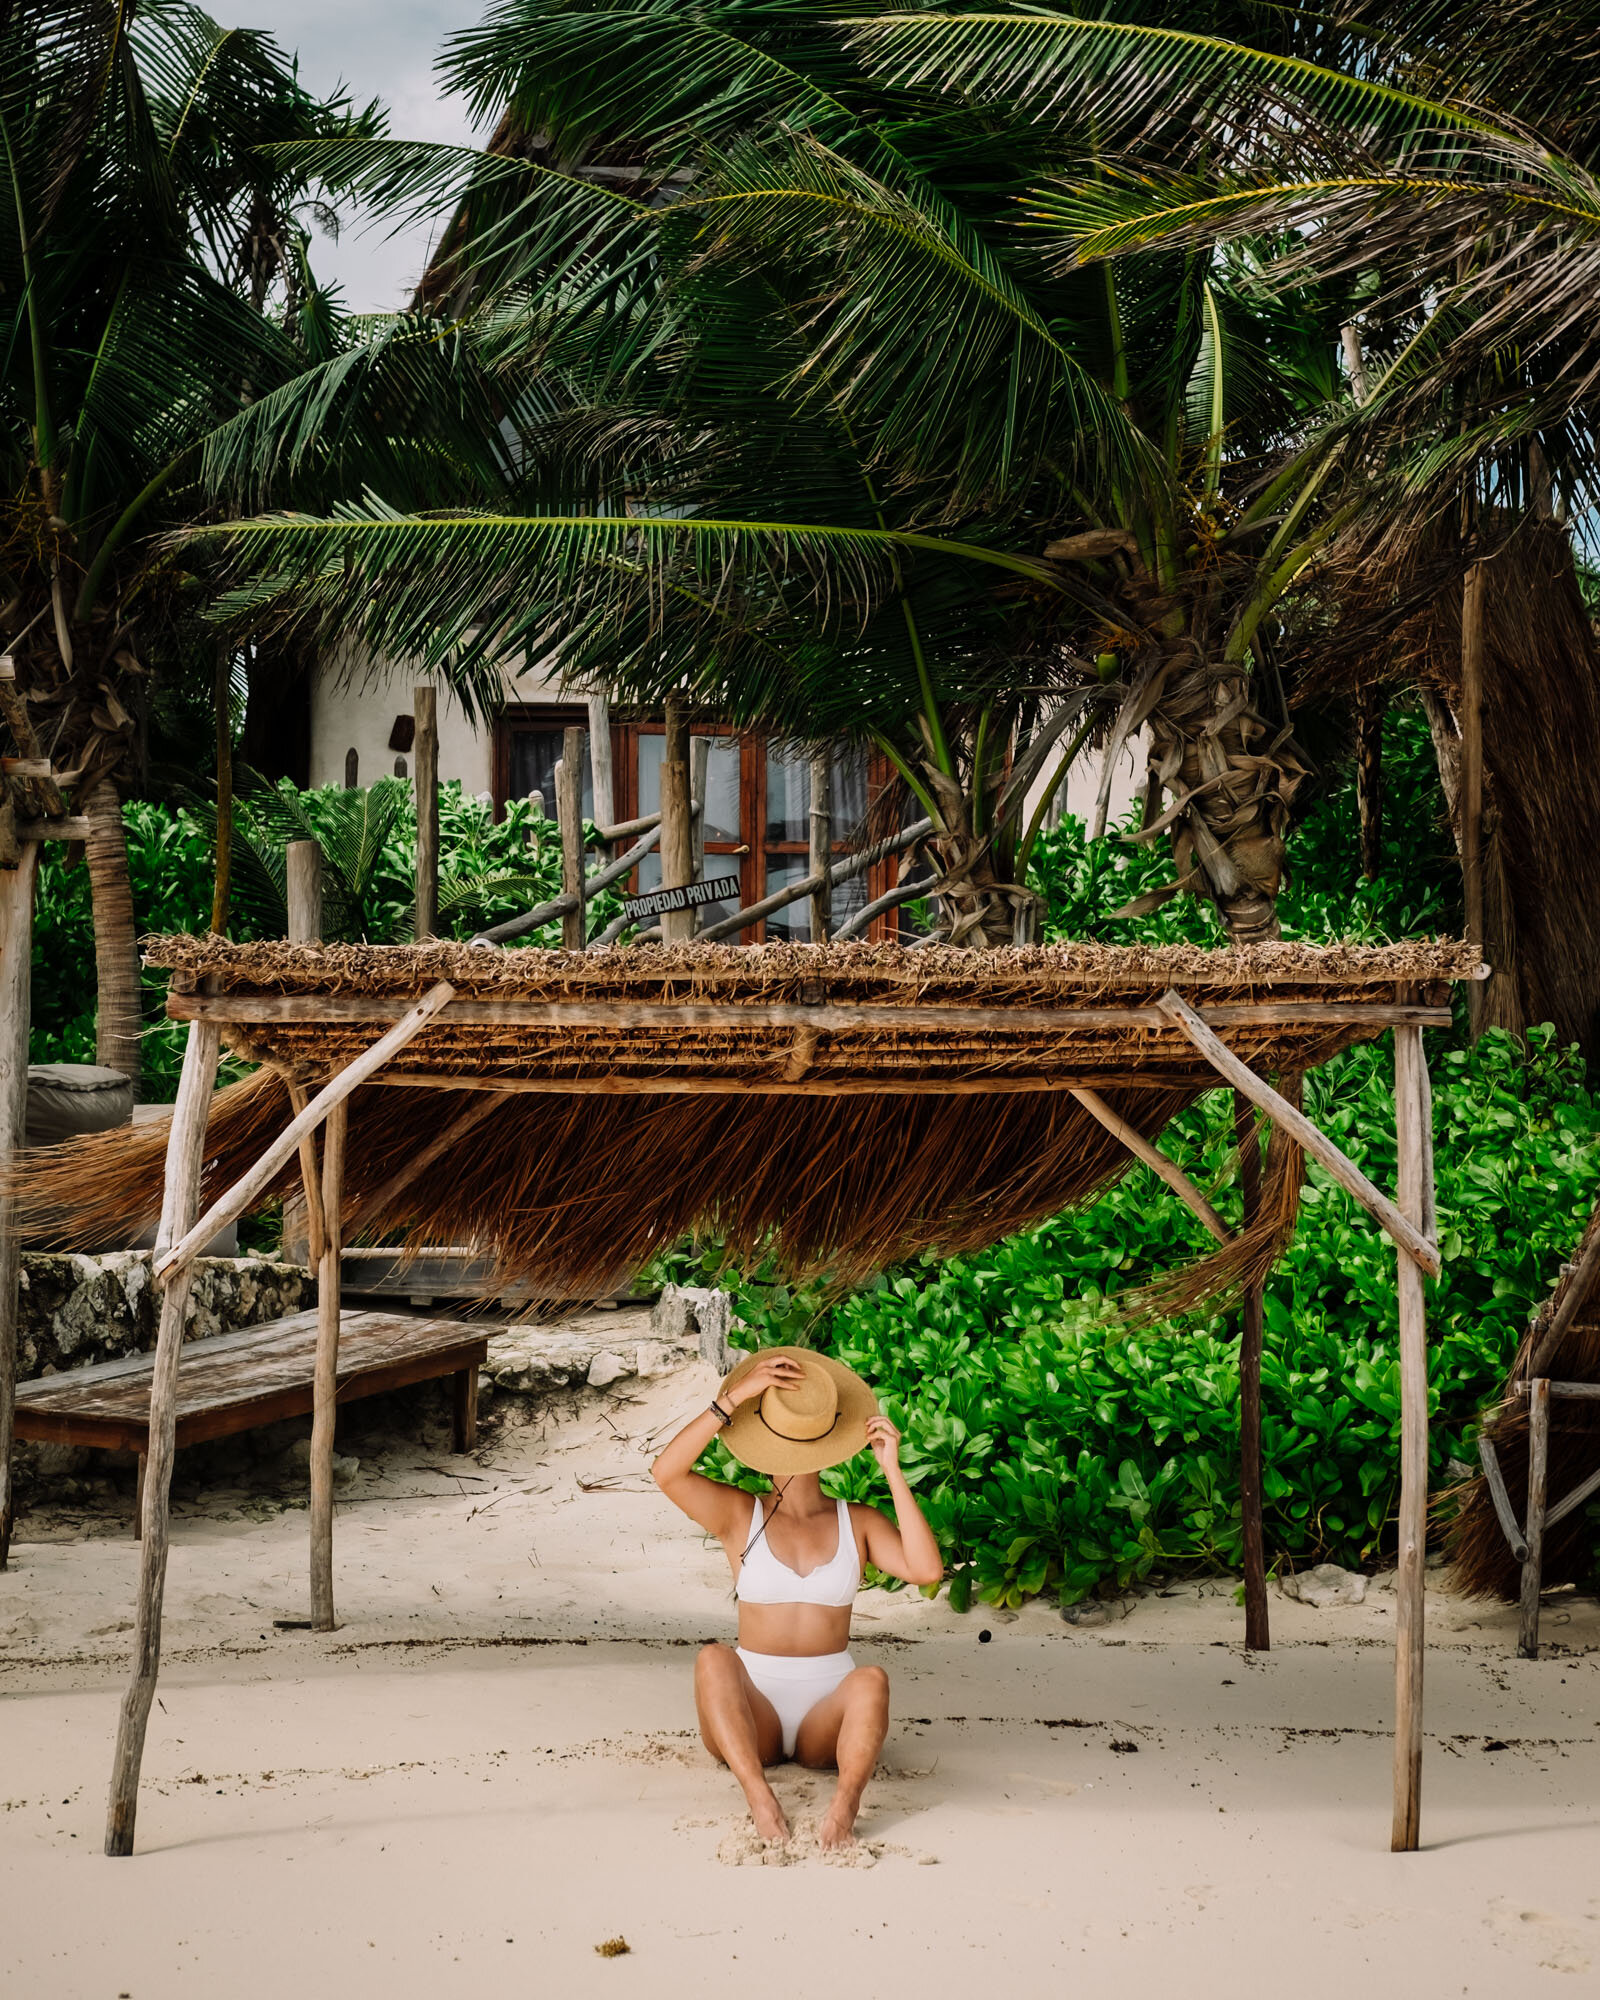 Rachel Off Duty: Woman in a White Swimsuit Sitting Under a Palapa in Tulum, Mexico